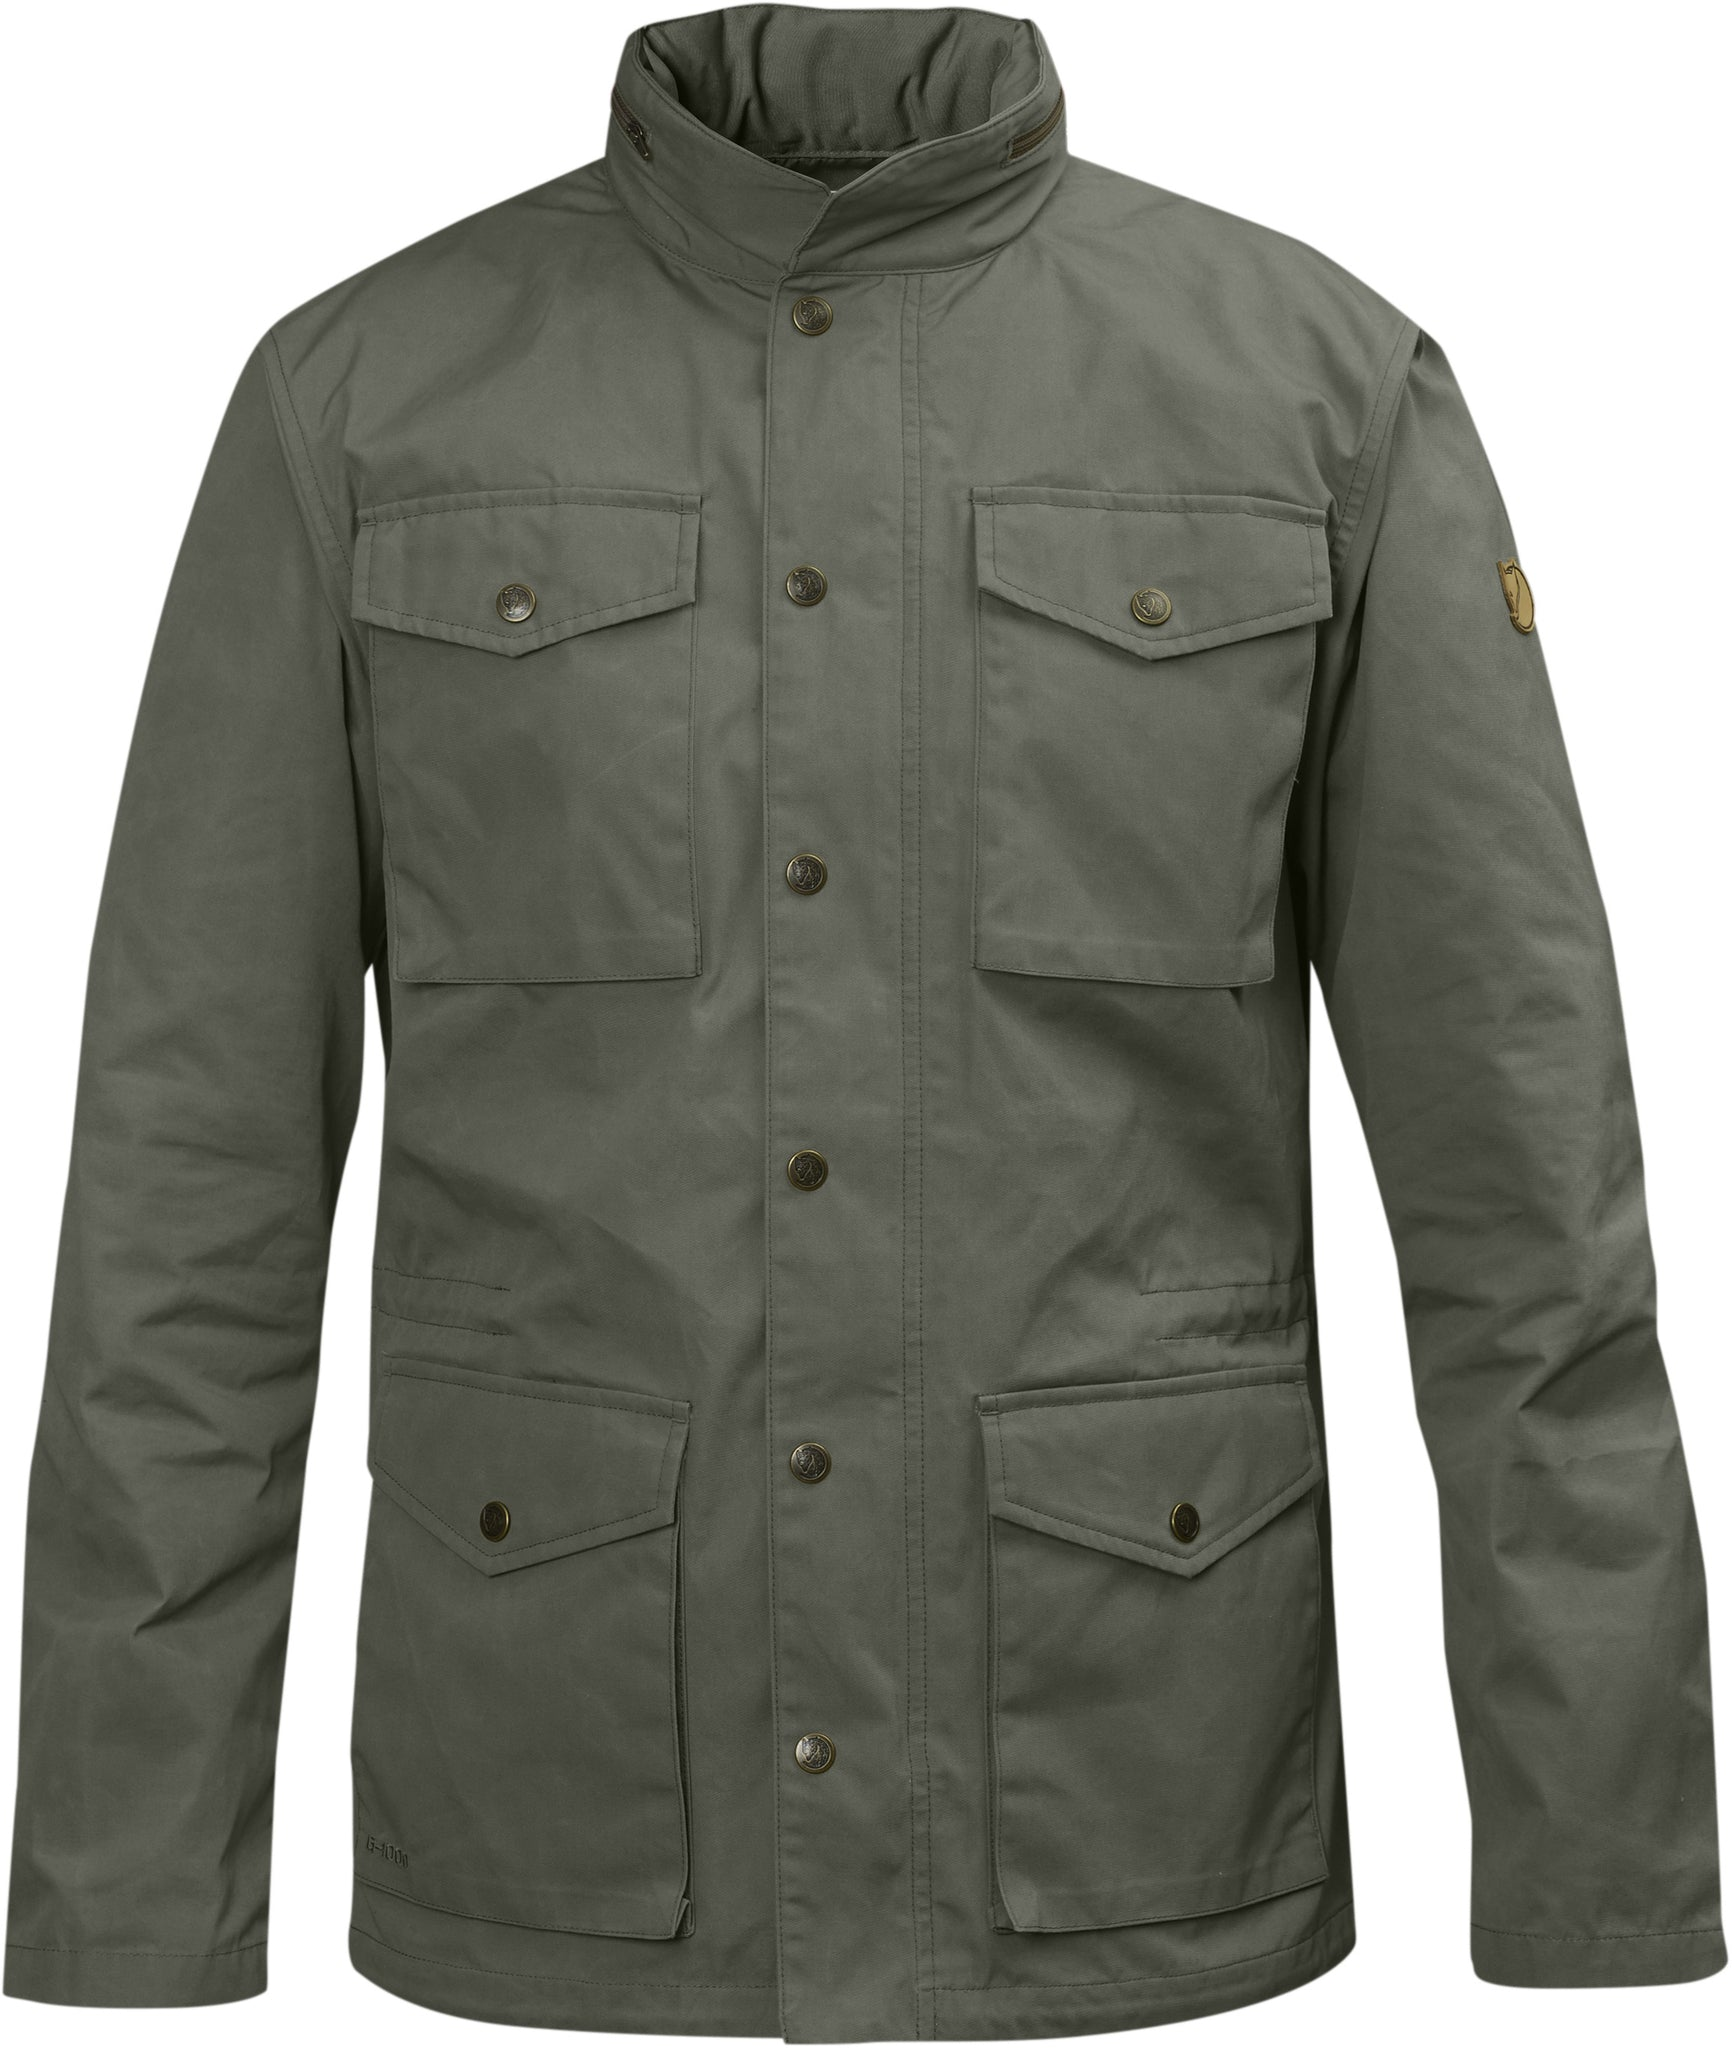 Fjallraven Men's Raven Jacket in Mountain Grey